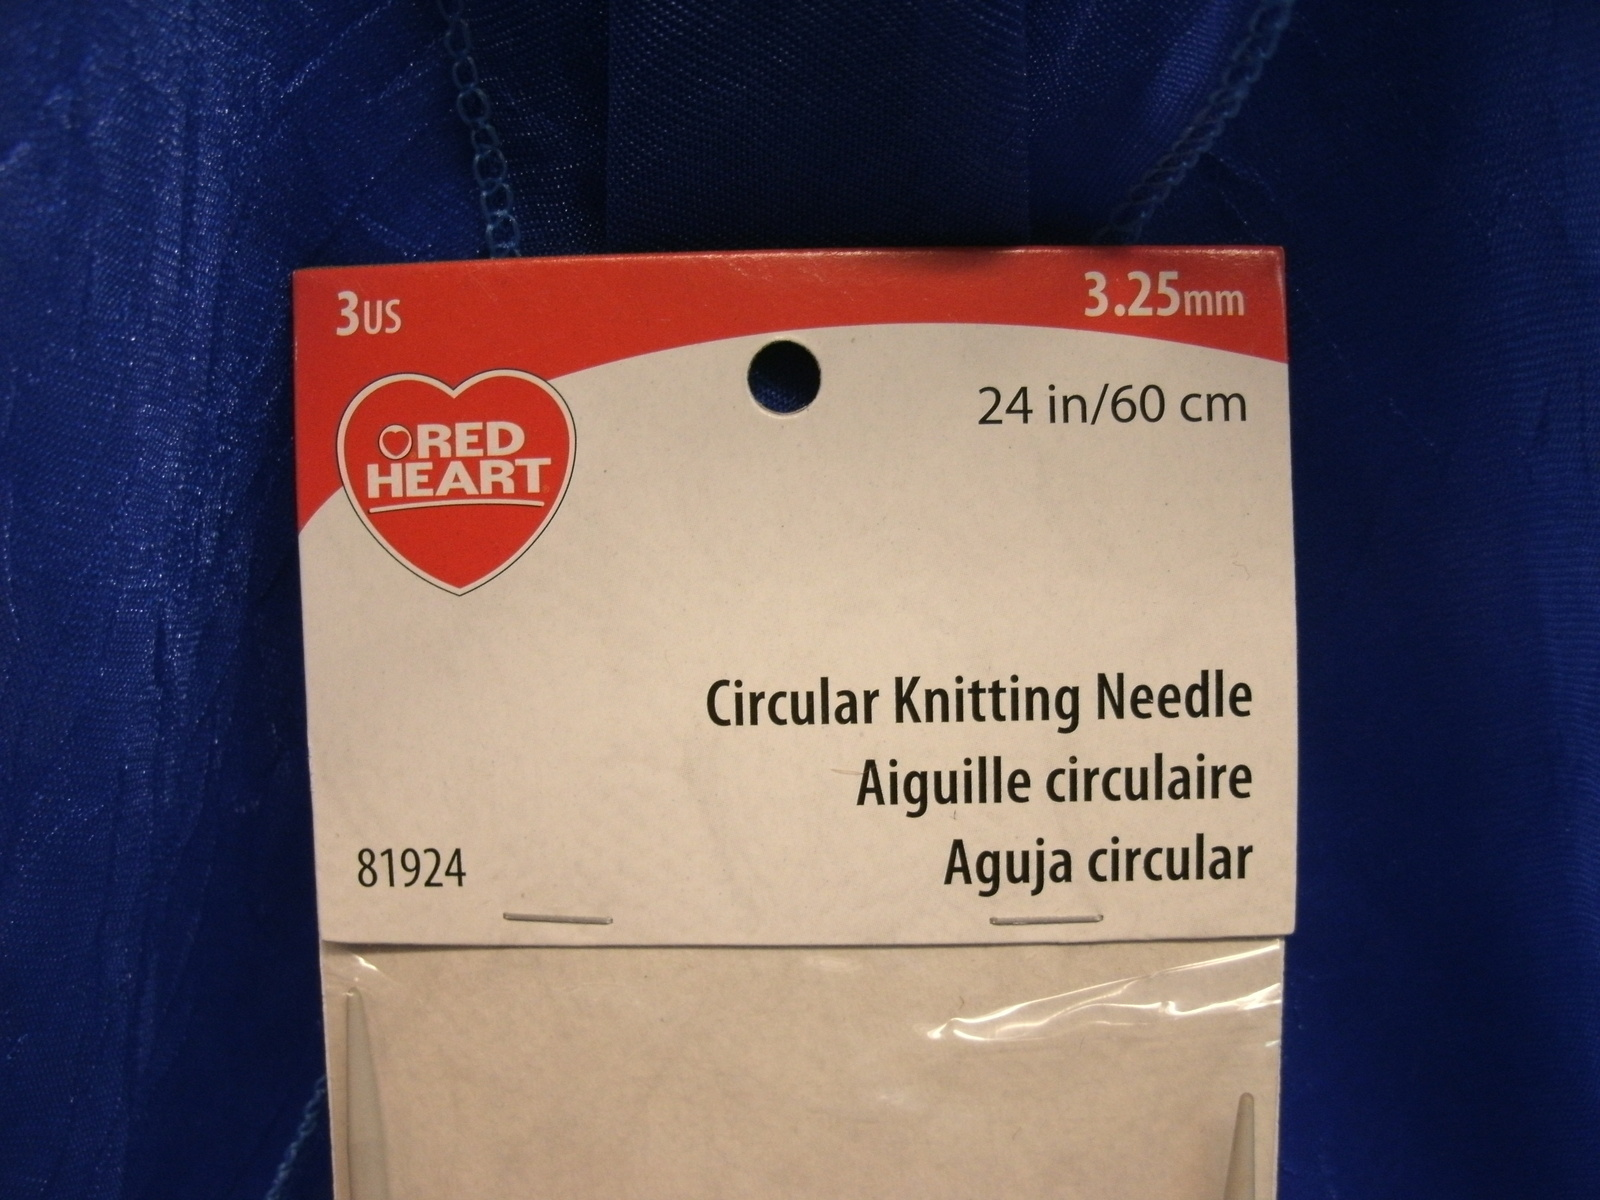 """Red Heart CIRCULAR KNITTING NEEDLE - NEW - 3.25mm 24""""/ 60cm Sizes 3 US 81924 - $6.99"""